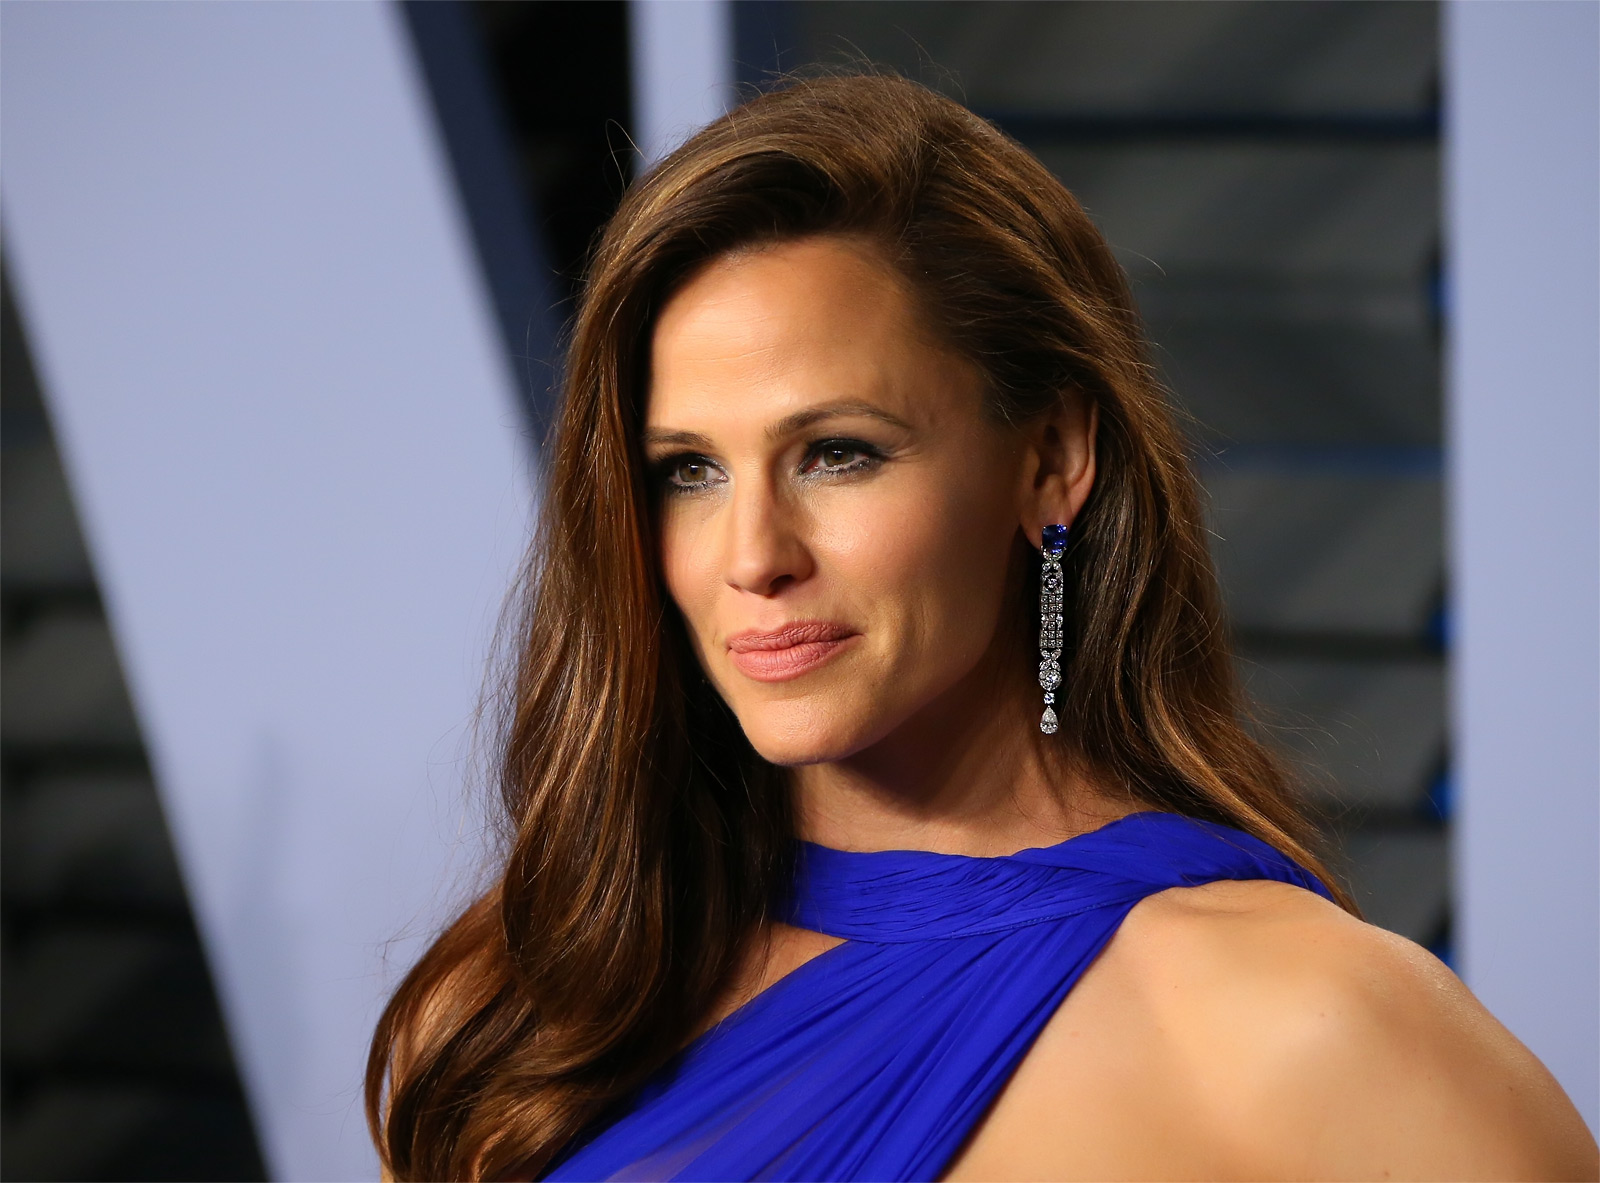 Jennifer Garner wearing Piaget jewellery